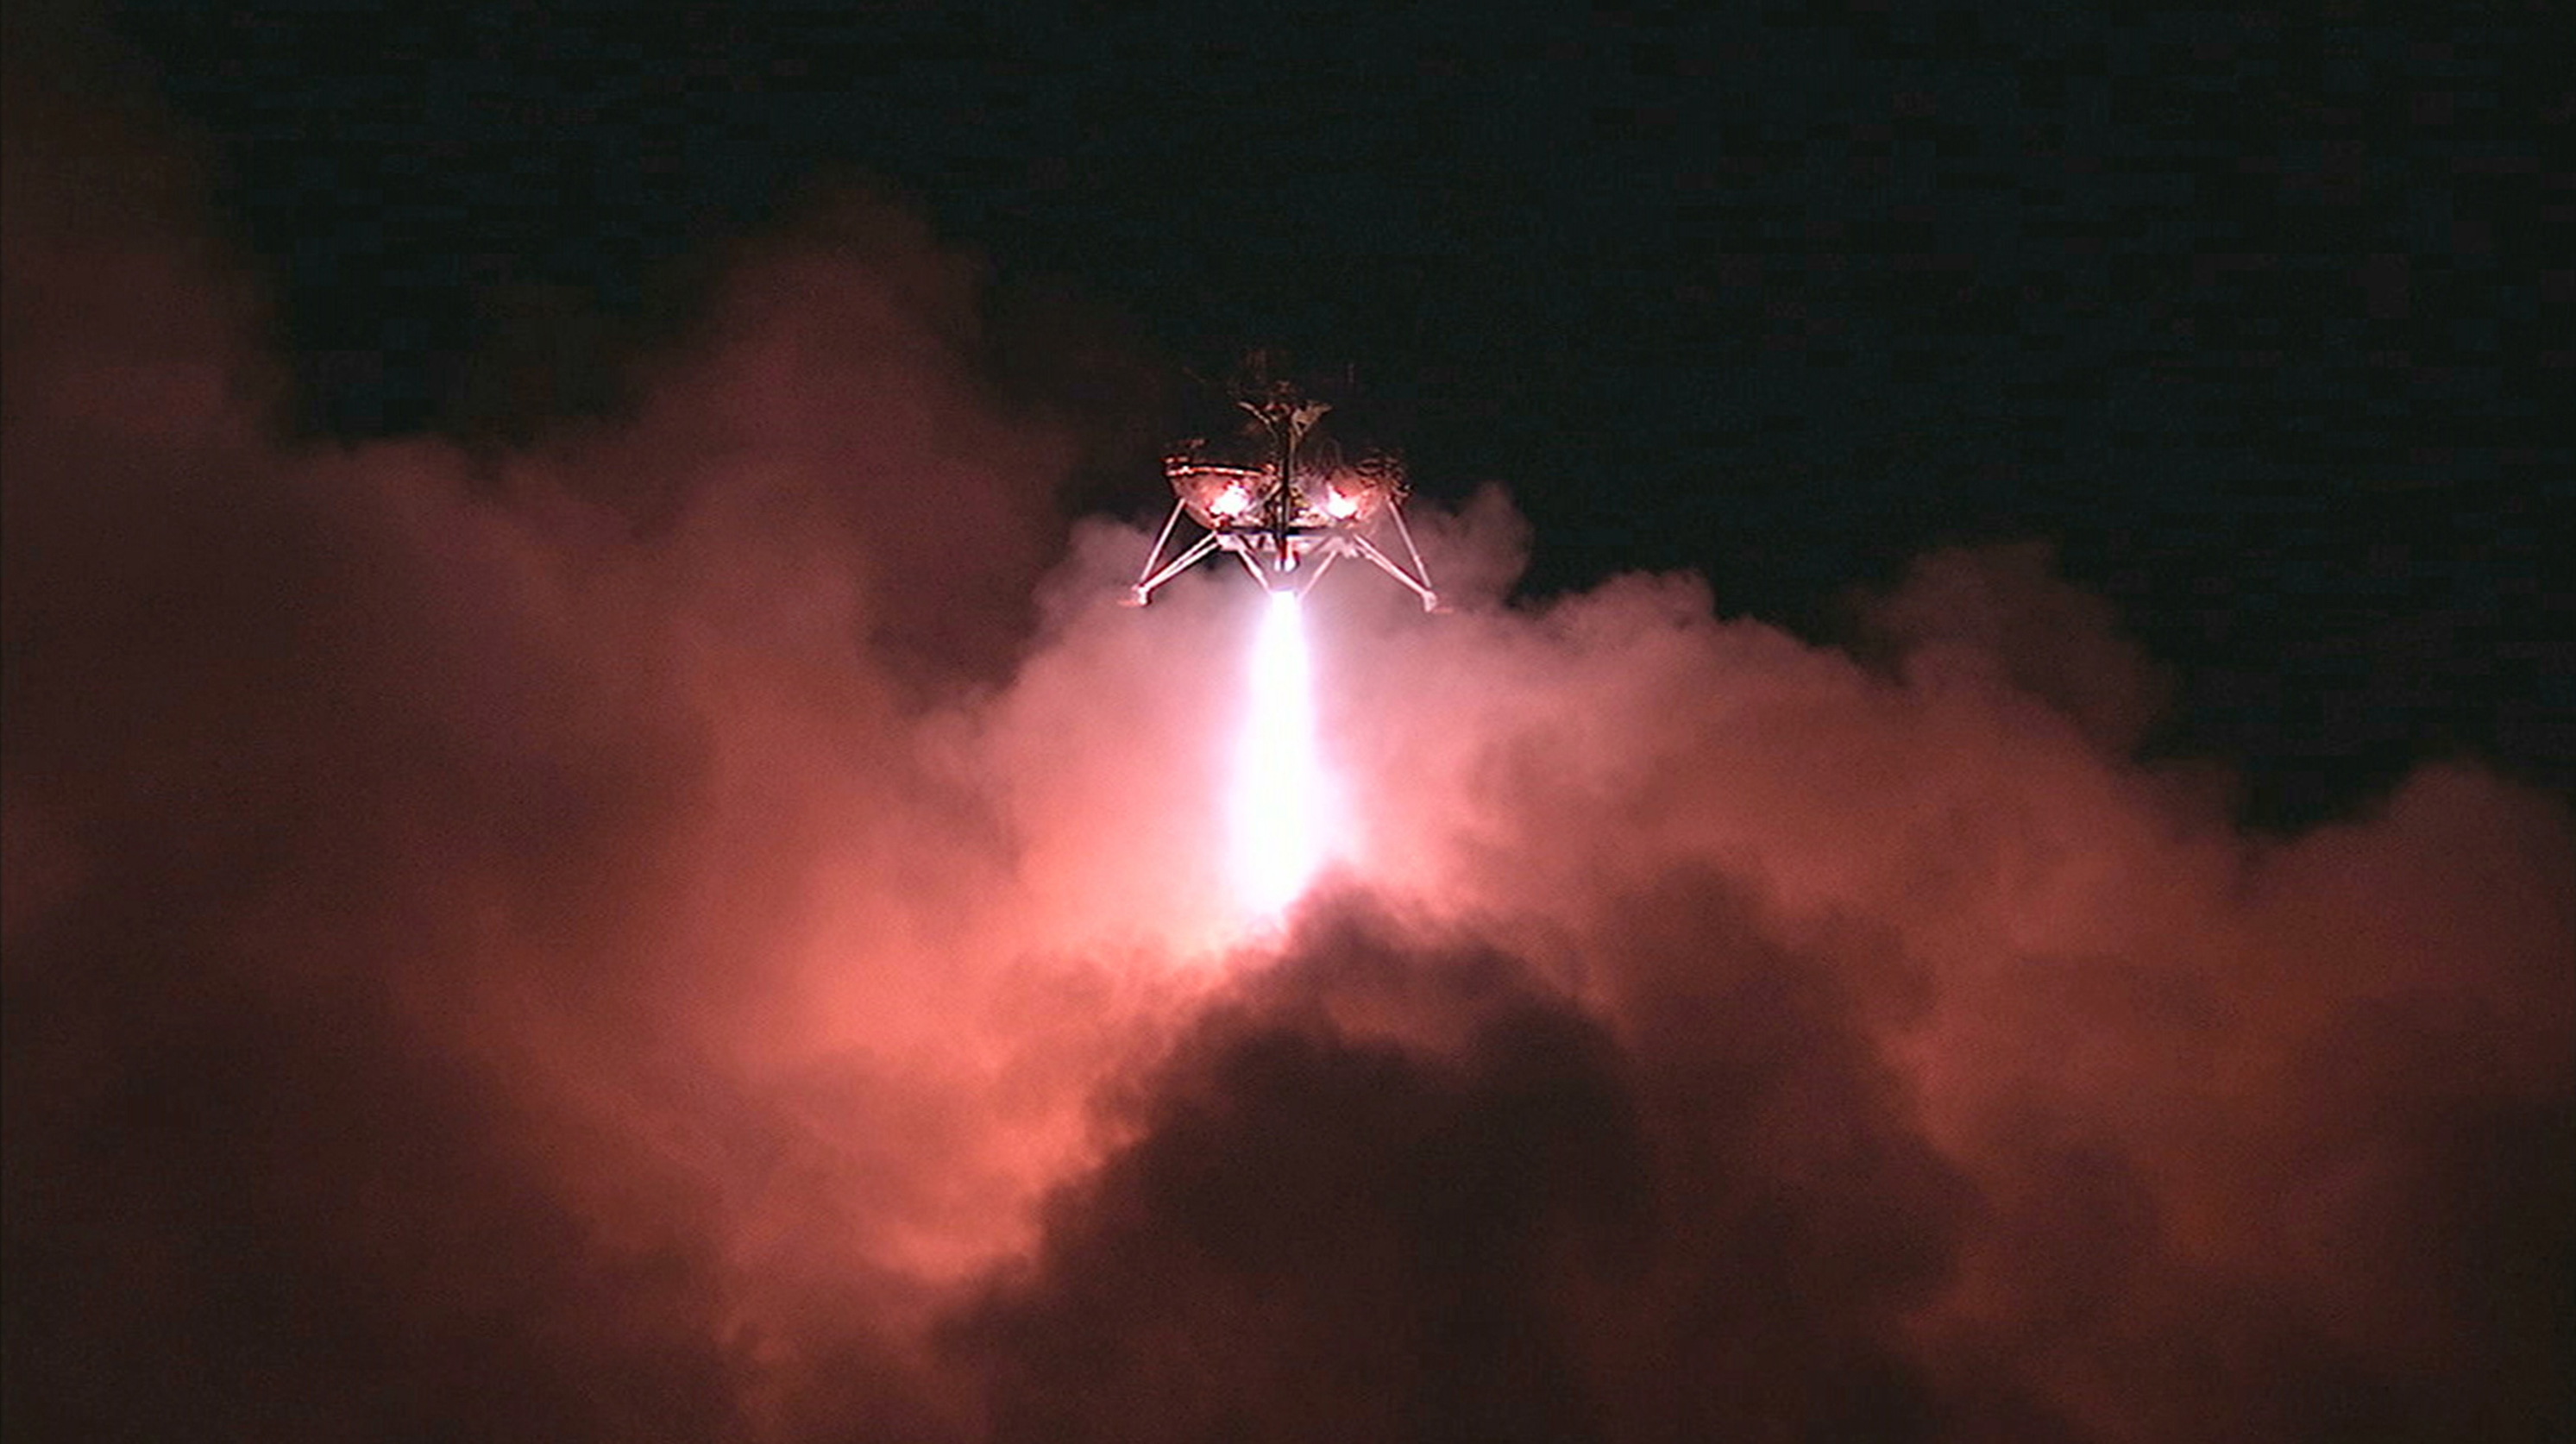 NASA's Morpheus prototype lander proved it was quite capable of successfully navigating the ALHAT hazard field after finding a safe landing spot during a night-time, free-flight test conducted at Kennedy Space Center on May 28, 2014. Photo credit: NASA/Mike Chambers